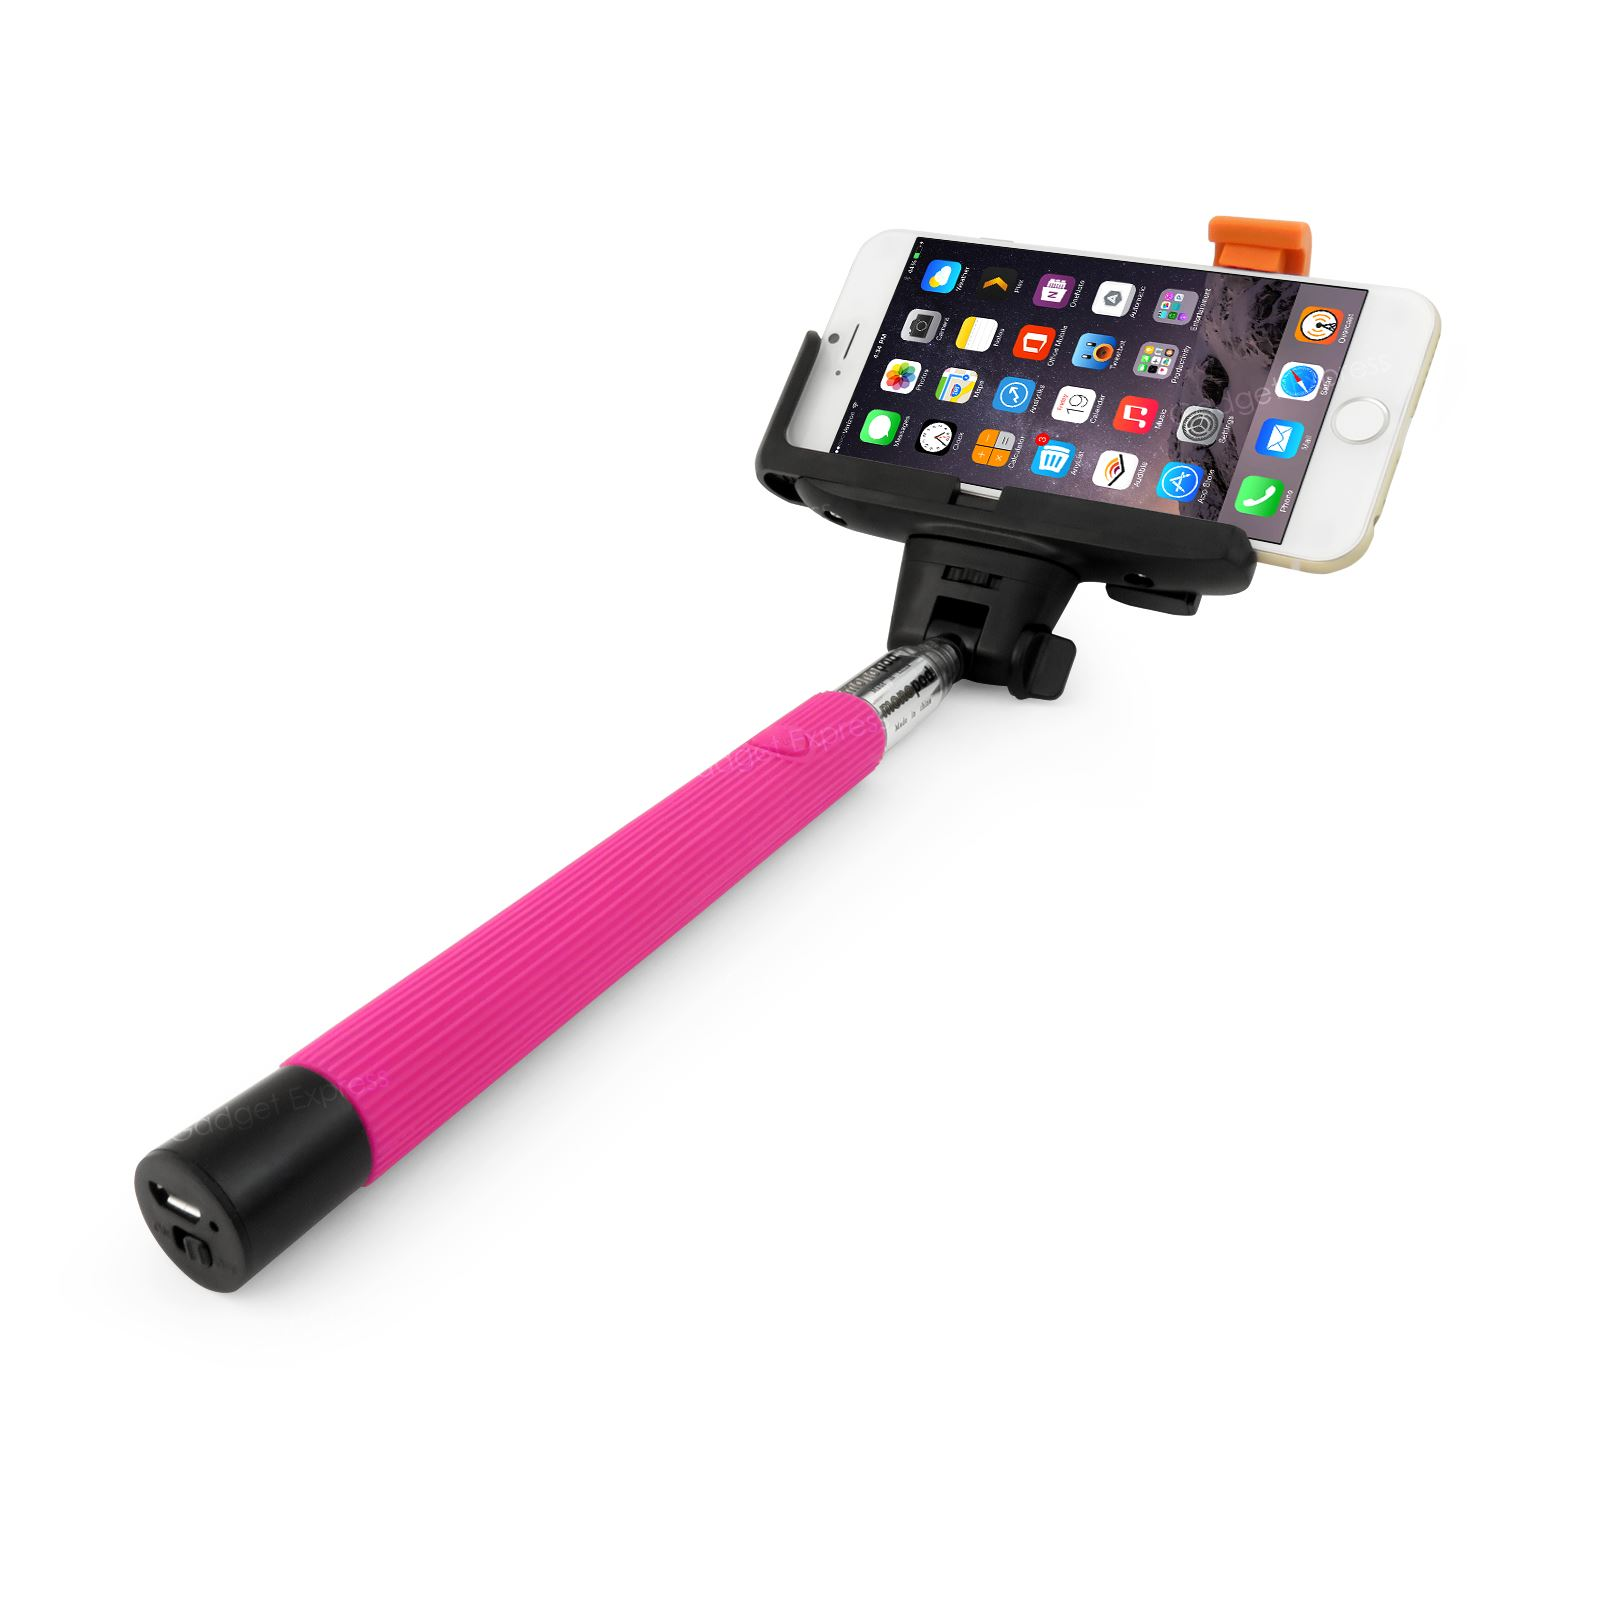 Extendable Monopod Handheld Self Portrait Selfie Stick